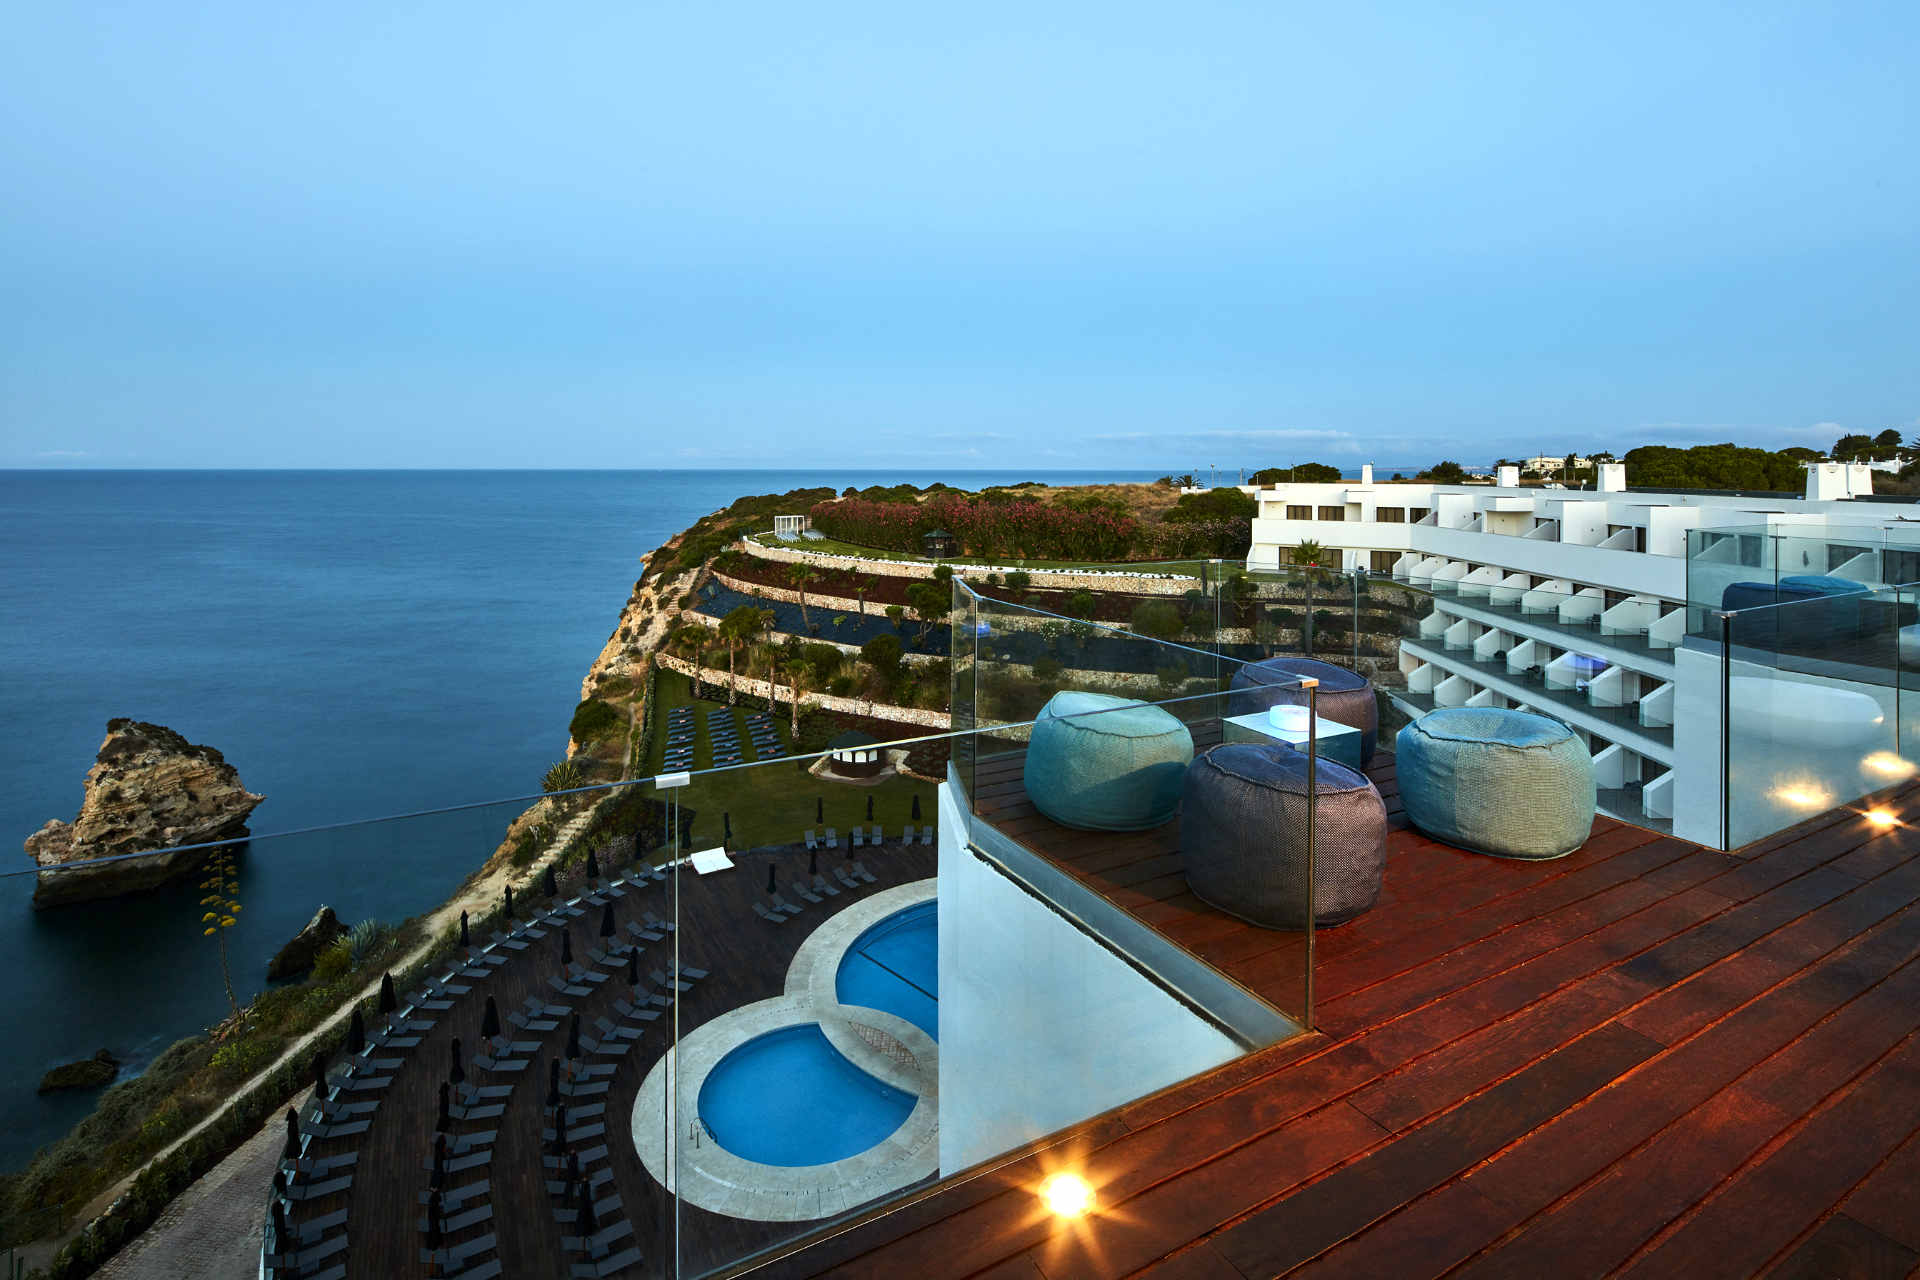 Tivoli Hotels In The Algarve Photo Gallery Tivoli Carvoeiro Algarve Resort